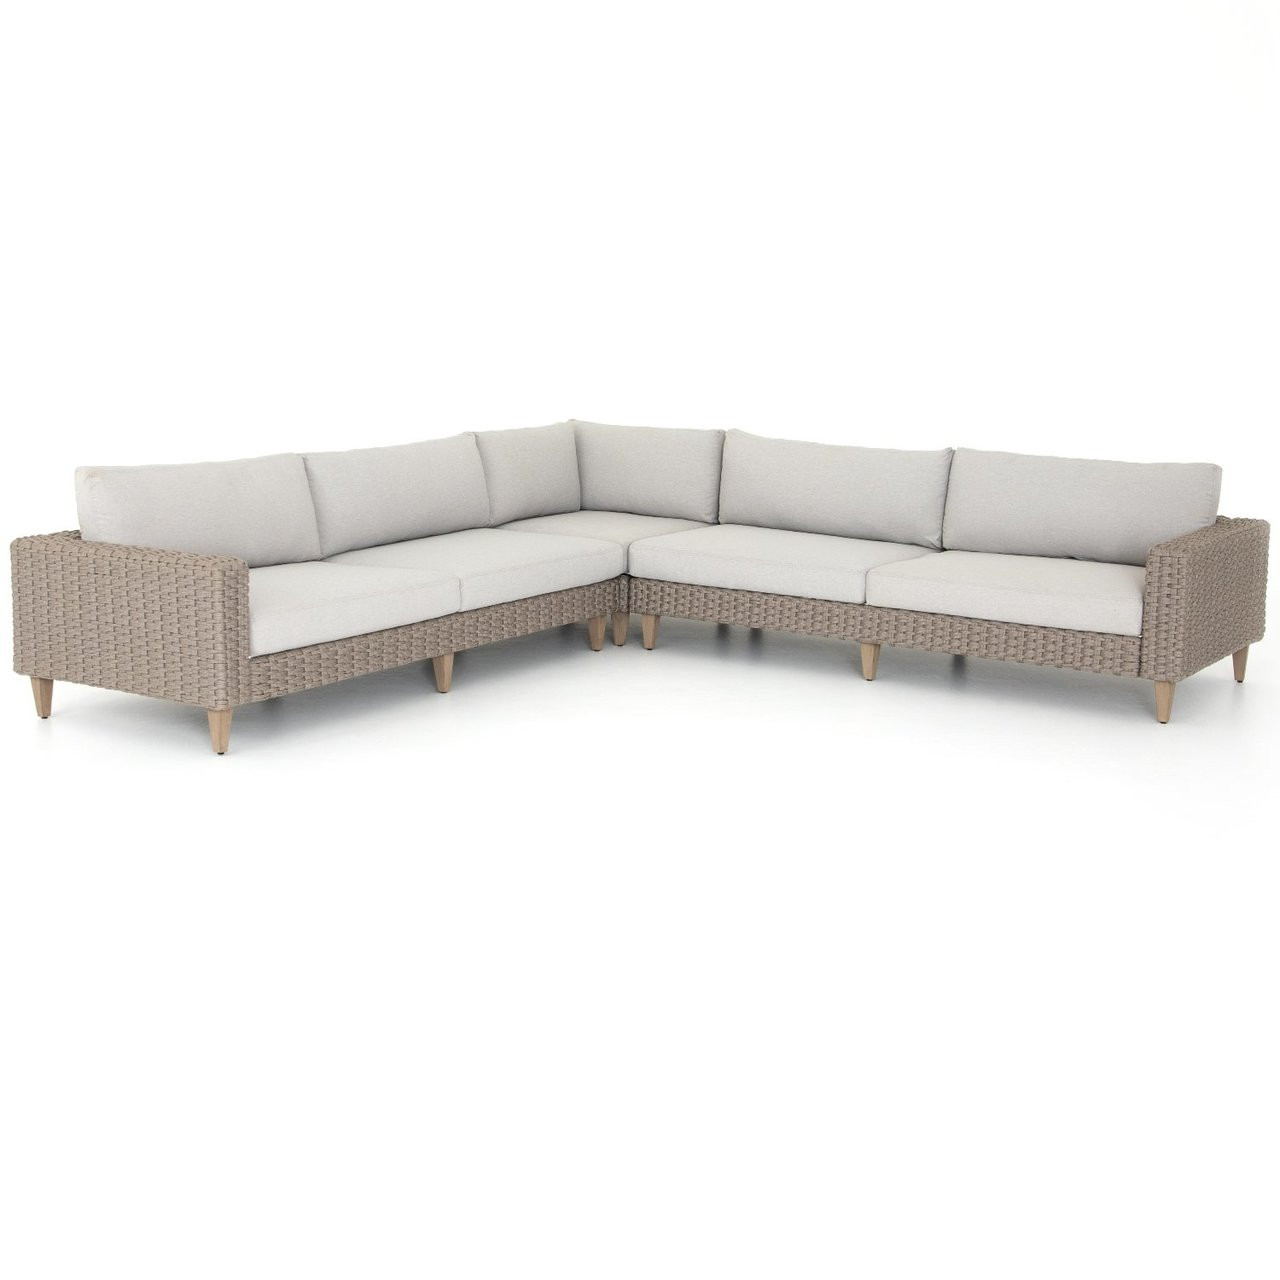 Remi Grey Woven Rope Outdoor 3-Pc Corner Sectional Sofa 122\